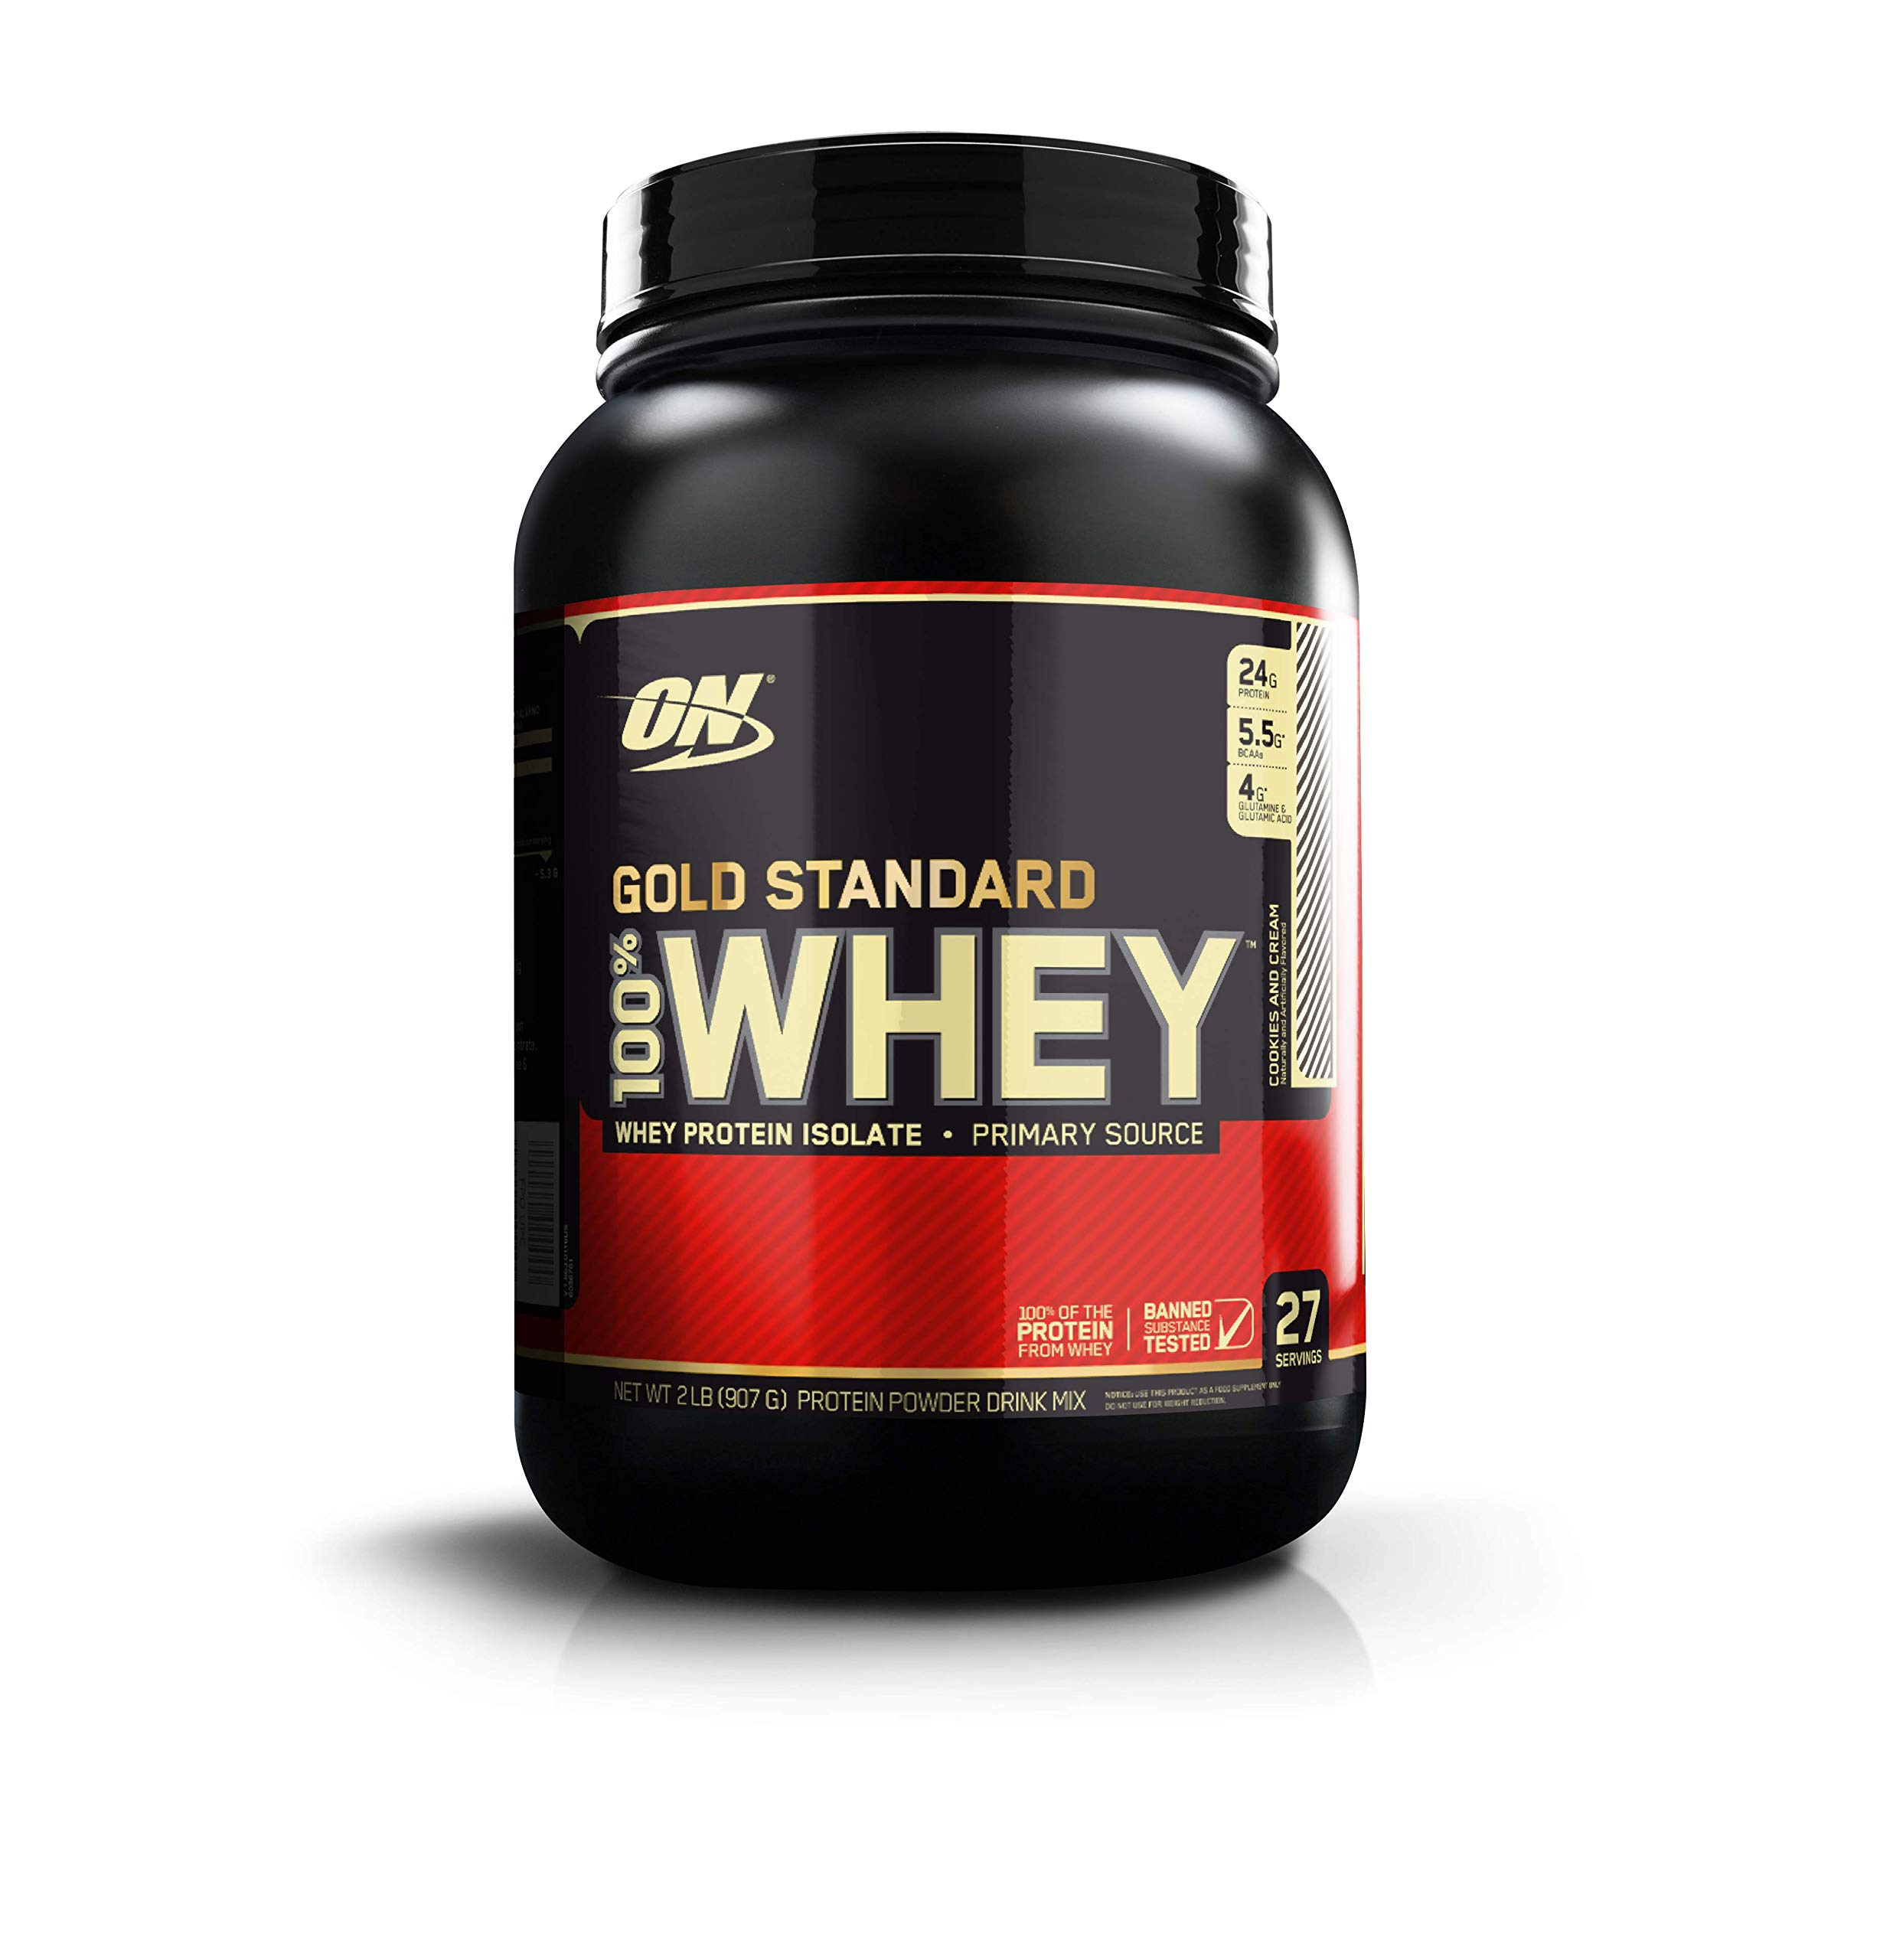 OPTIMUM NUTRITION GOLD STANDARD 100 Whey Protein Powder Cookies And Cream 185 Pound